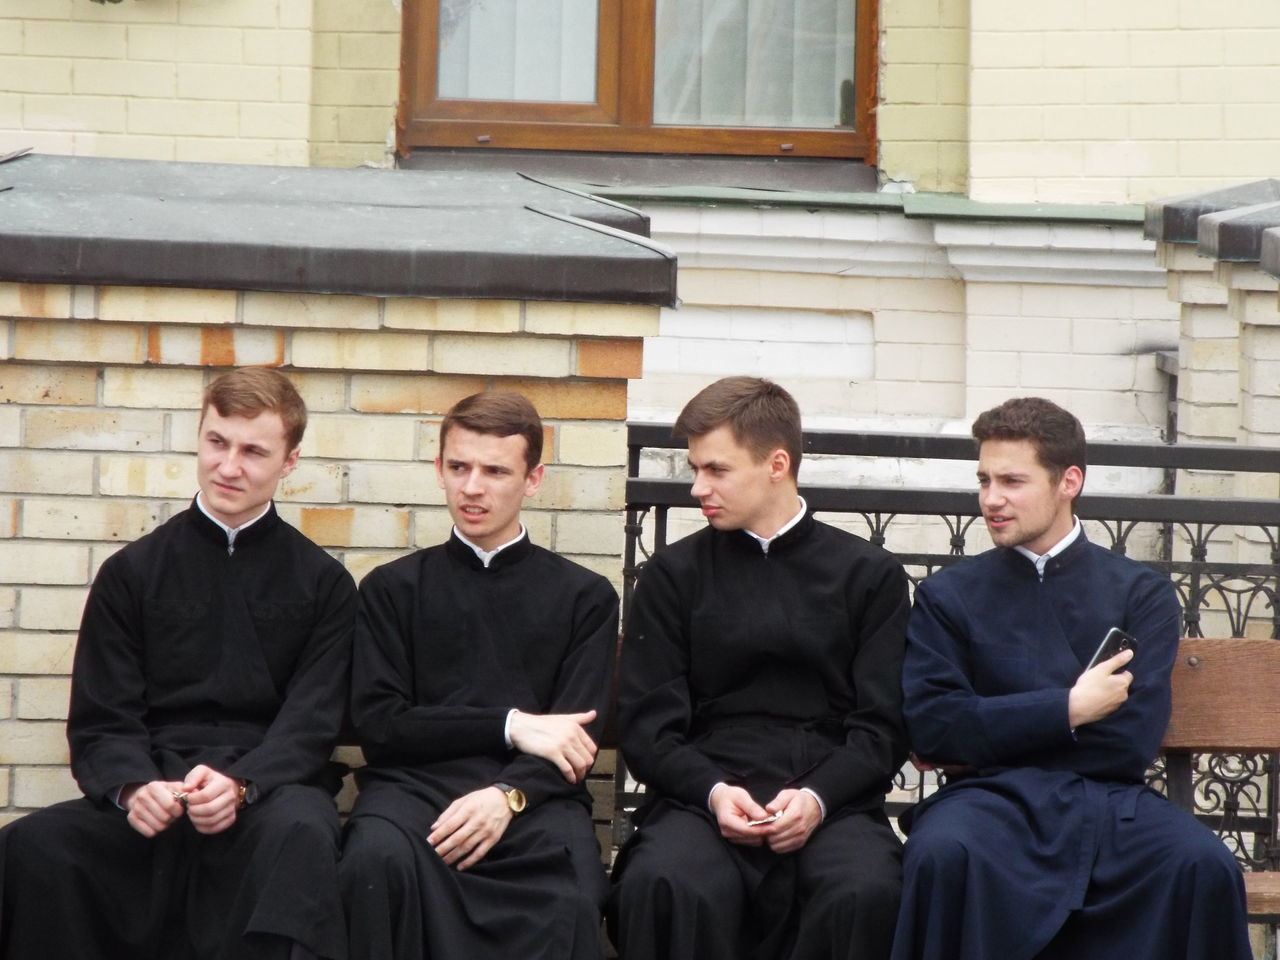 Practicing vicars sat on a bench in Kiev, Ukraine. Day Eastern Europe Kiev Kiev Ukraine Photojournalism Religion Sat Down The Photojournalist - 2016 EyeEm Awards The Street Photographer - 2016 EyeEm Awards Ukraine